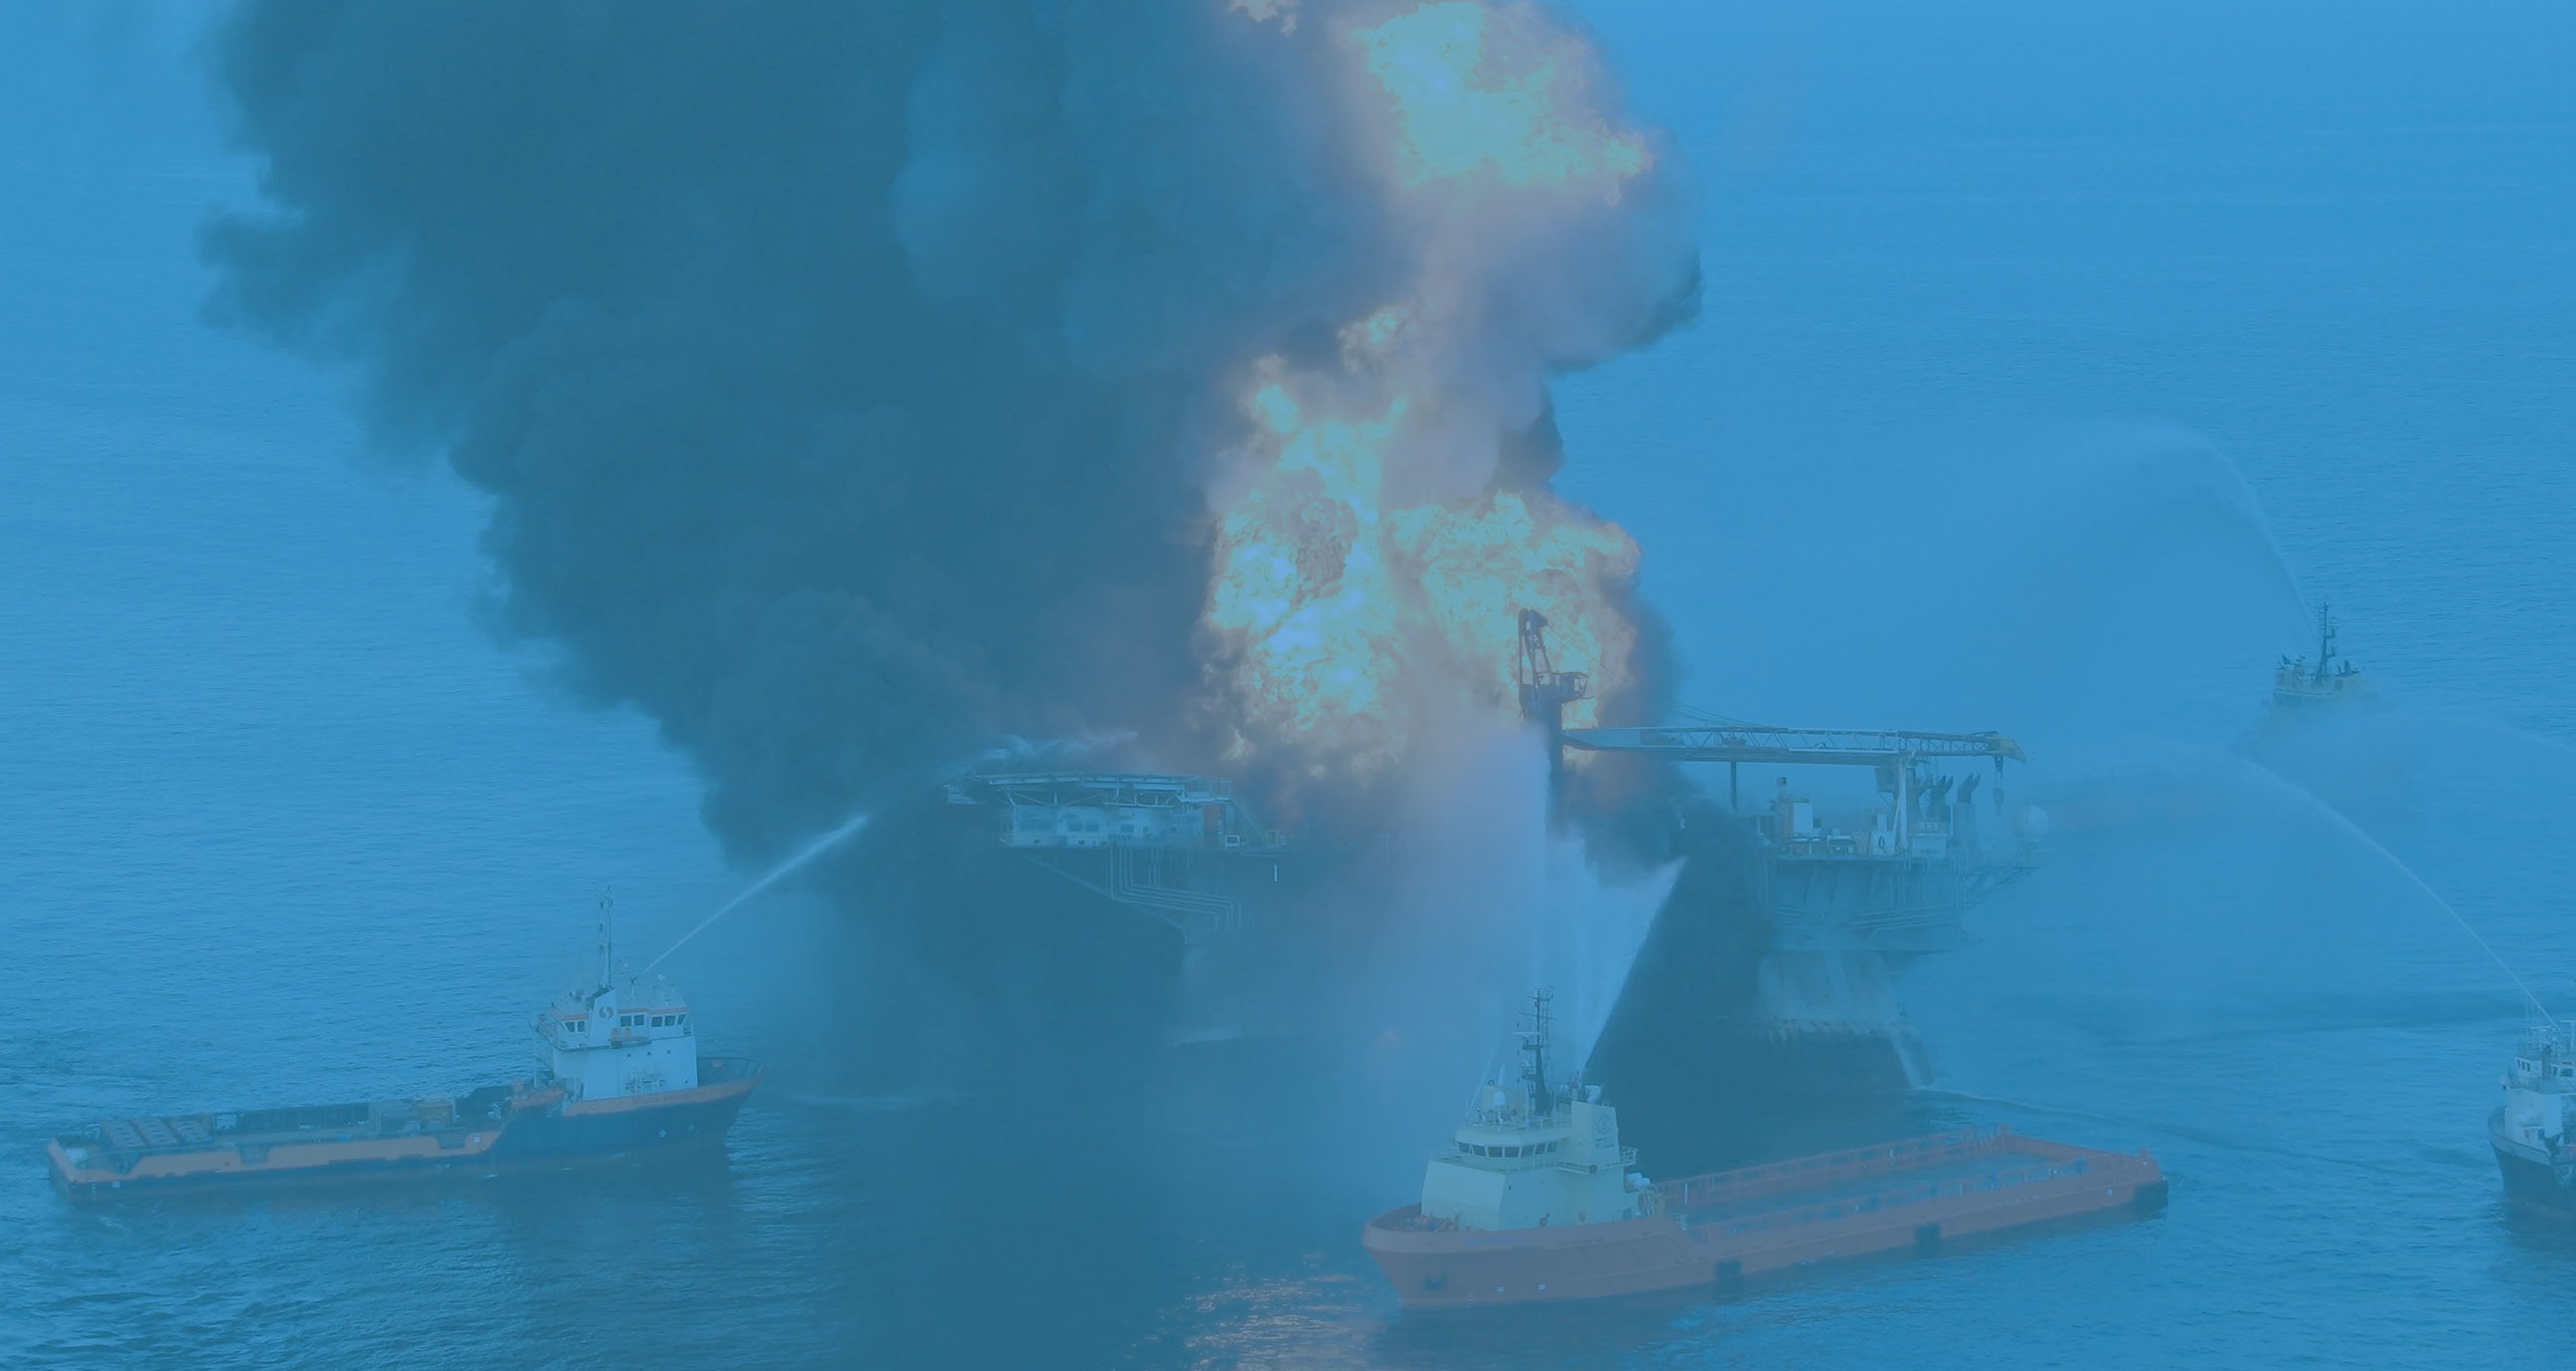 MACONDO'S DEEPWATER HORIZON DISASTER- INVESTIGATION, CAPPING AND RELIEF WELL DRILLING